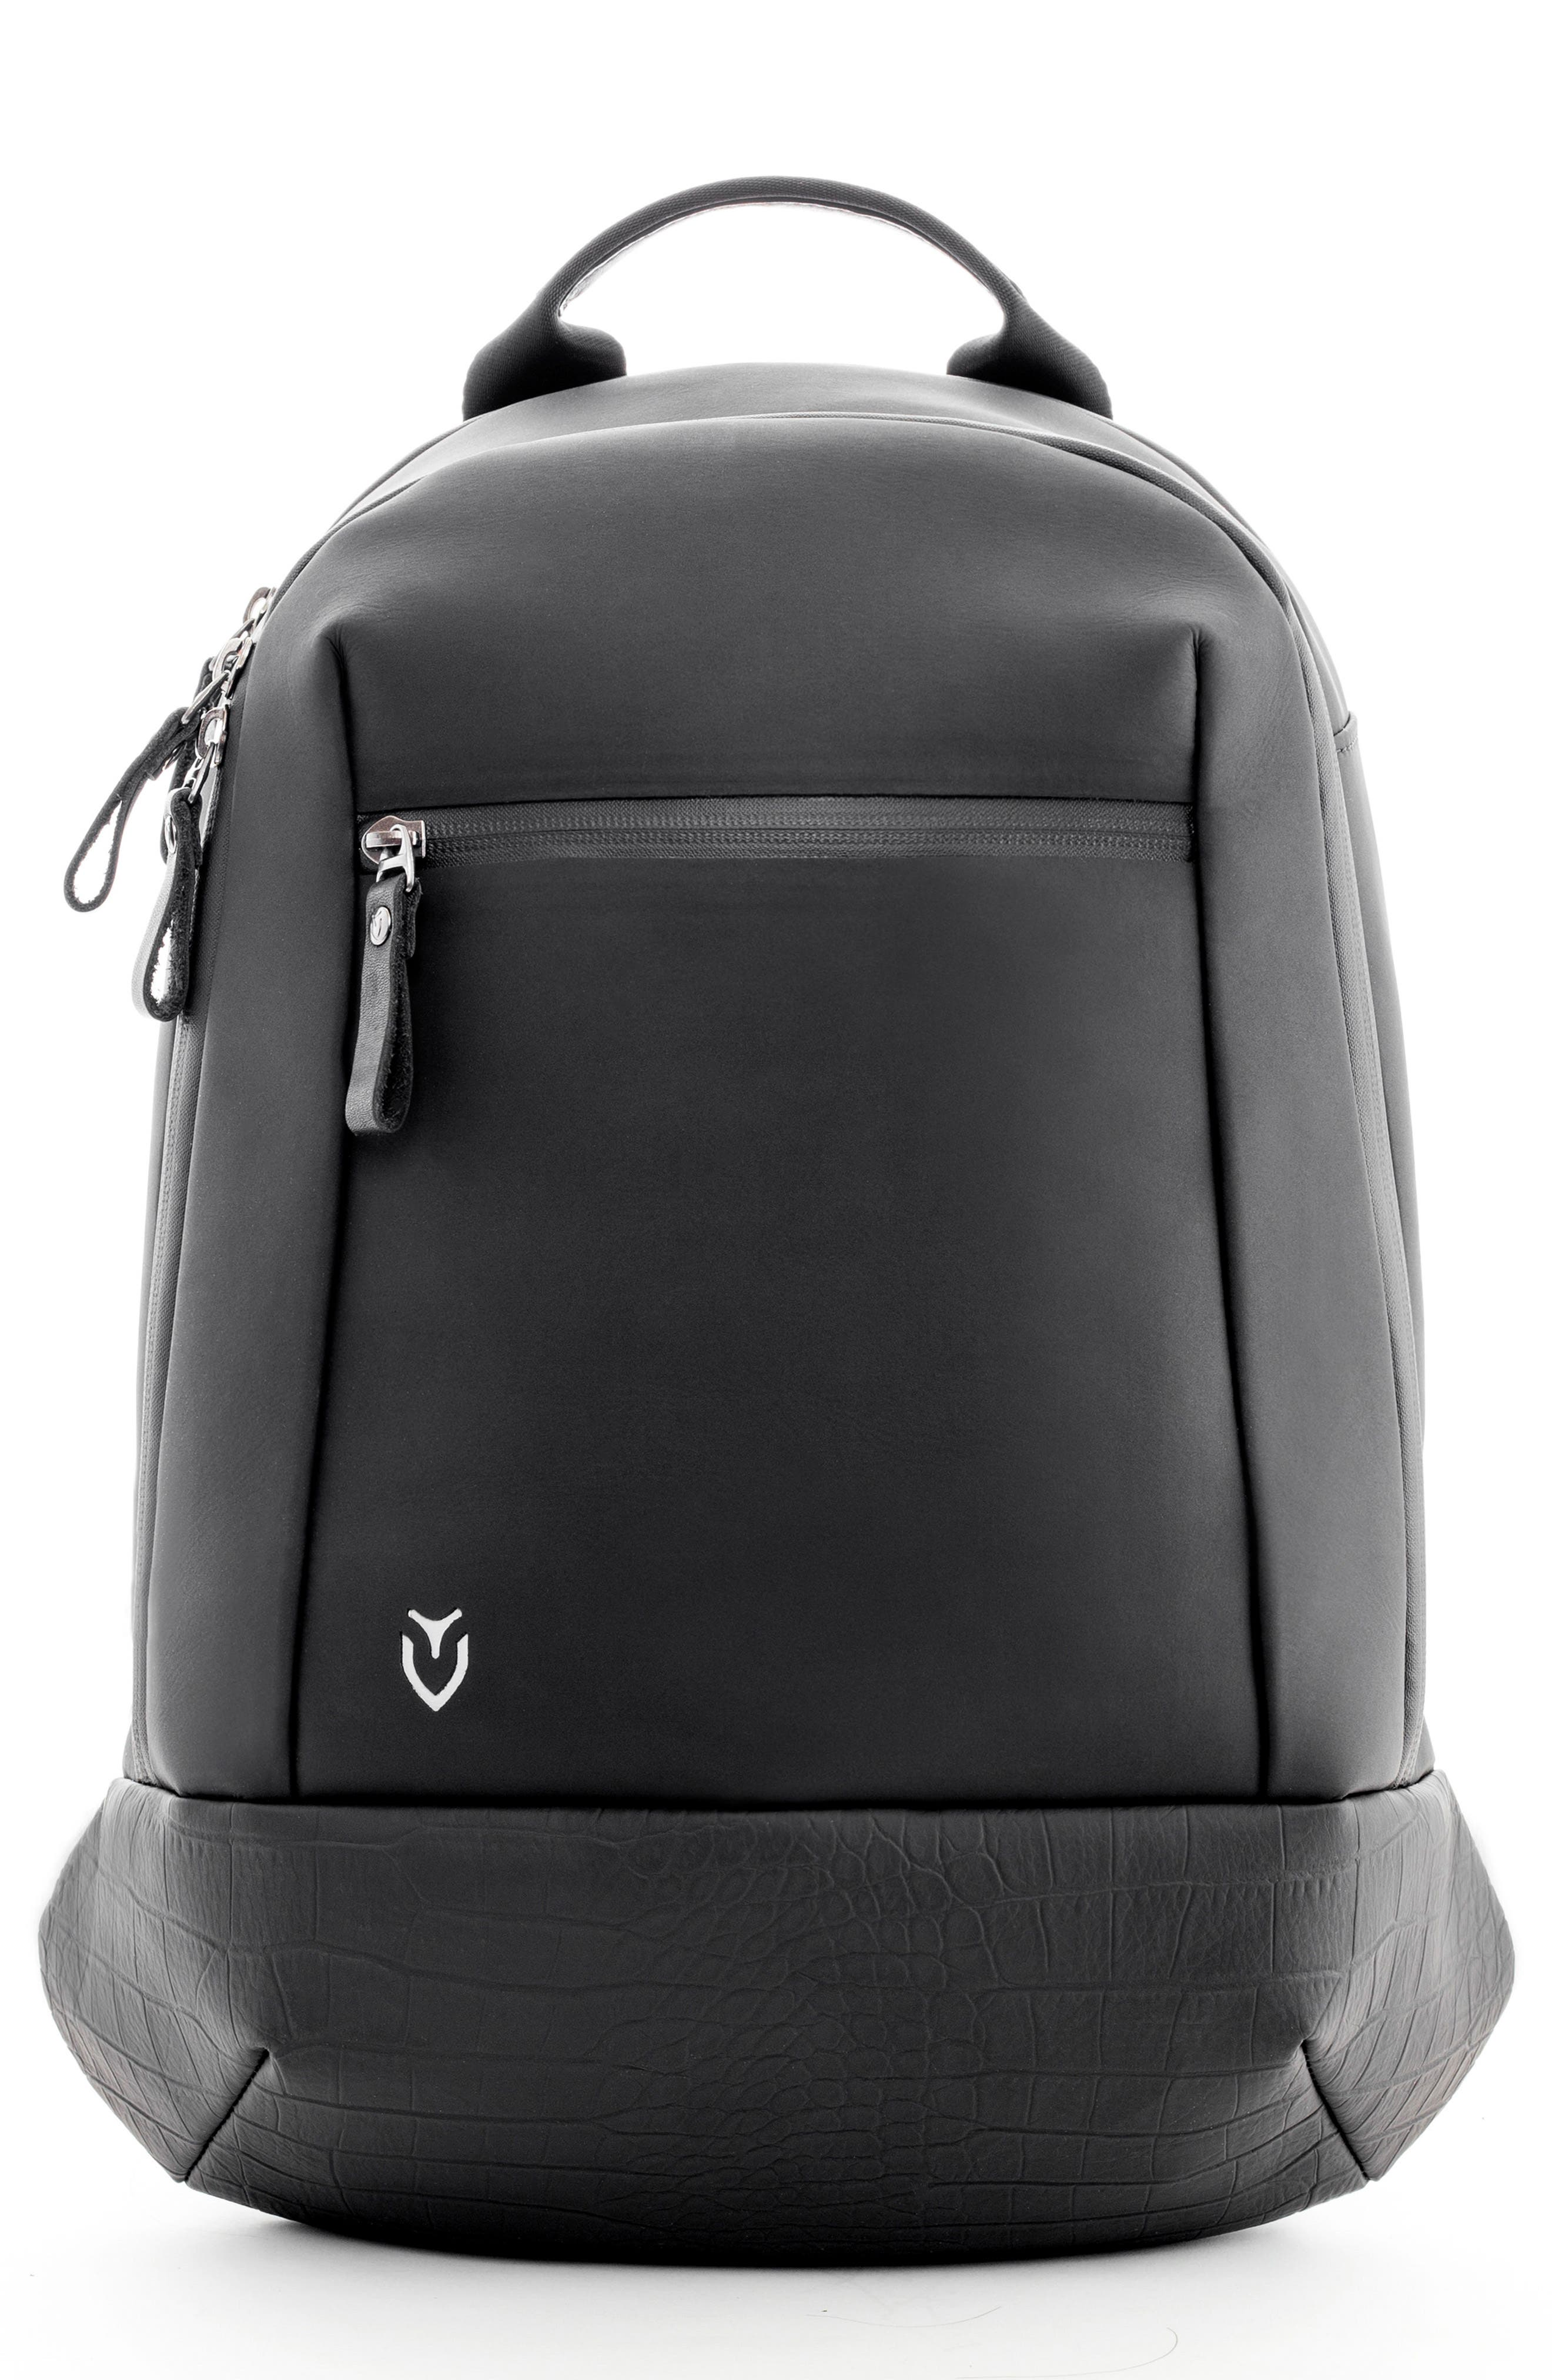 Vessel Mini Faux Leather Backpack